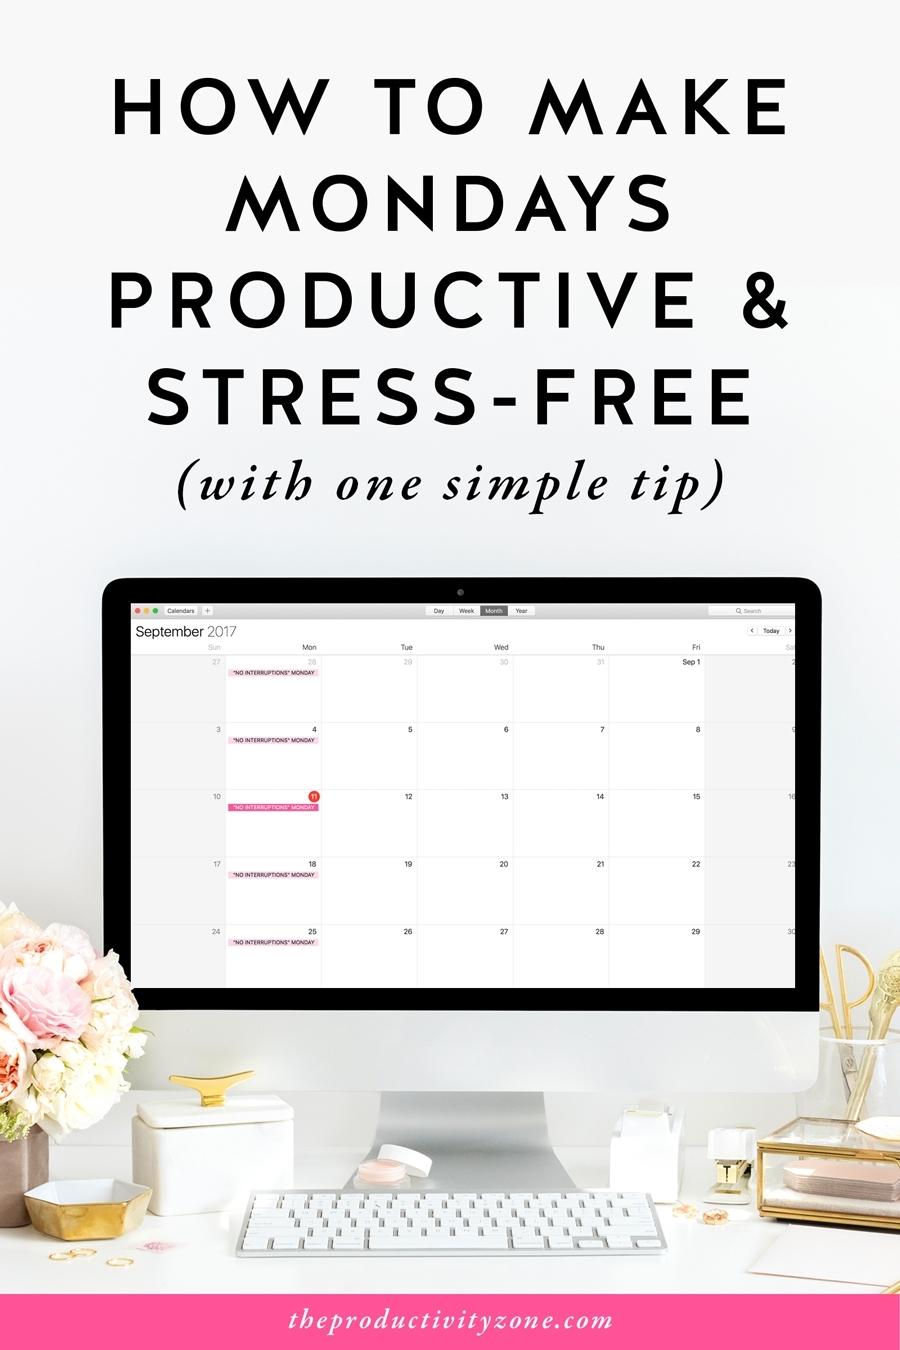 How To Make Mondays Productive & Stress-Free (With One